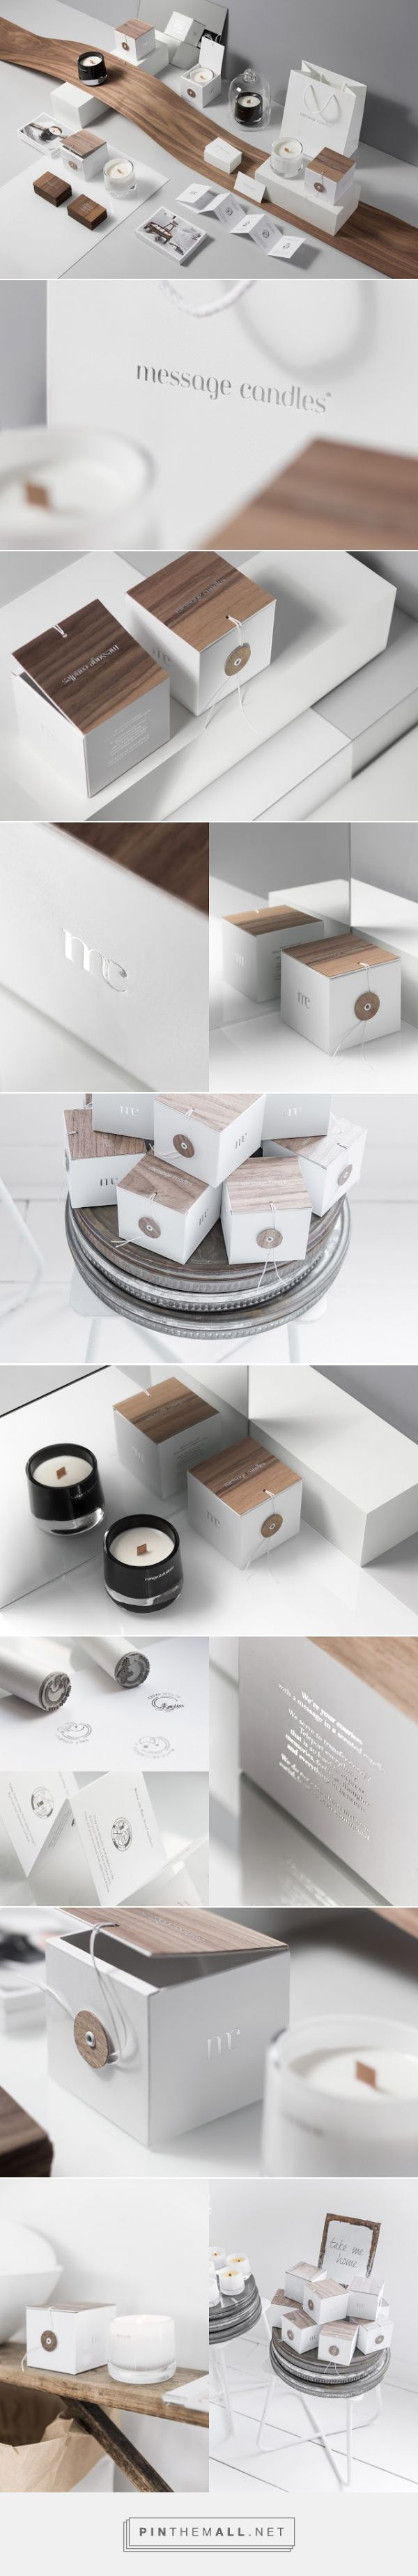 Message Candles - Packaging of the World - Creative Package Design Gallery - http://www.packagingoftheworld.com/2016/01/message-candles.html - created via https://pinthemall.net: